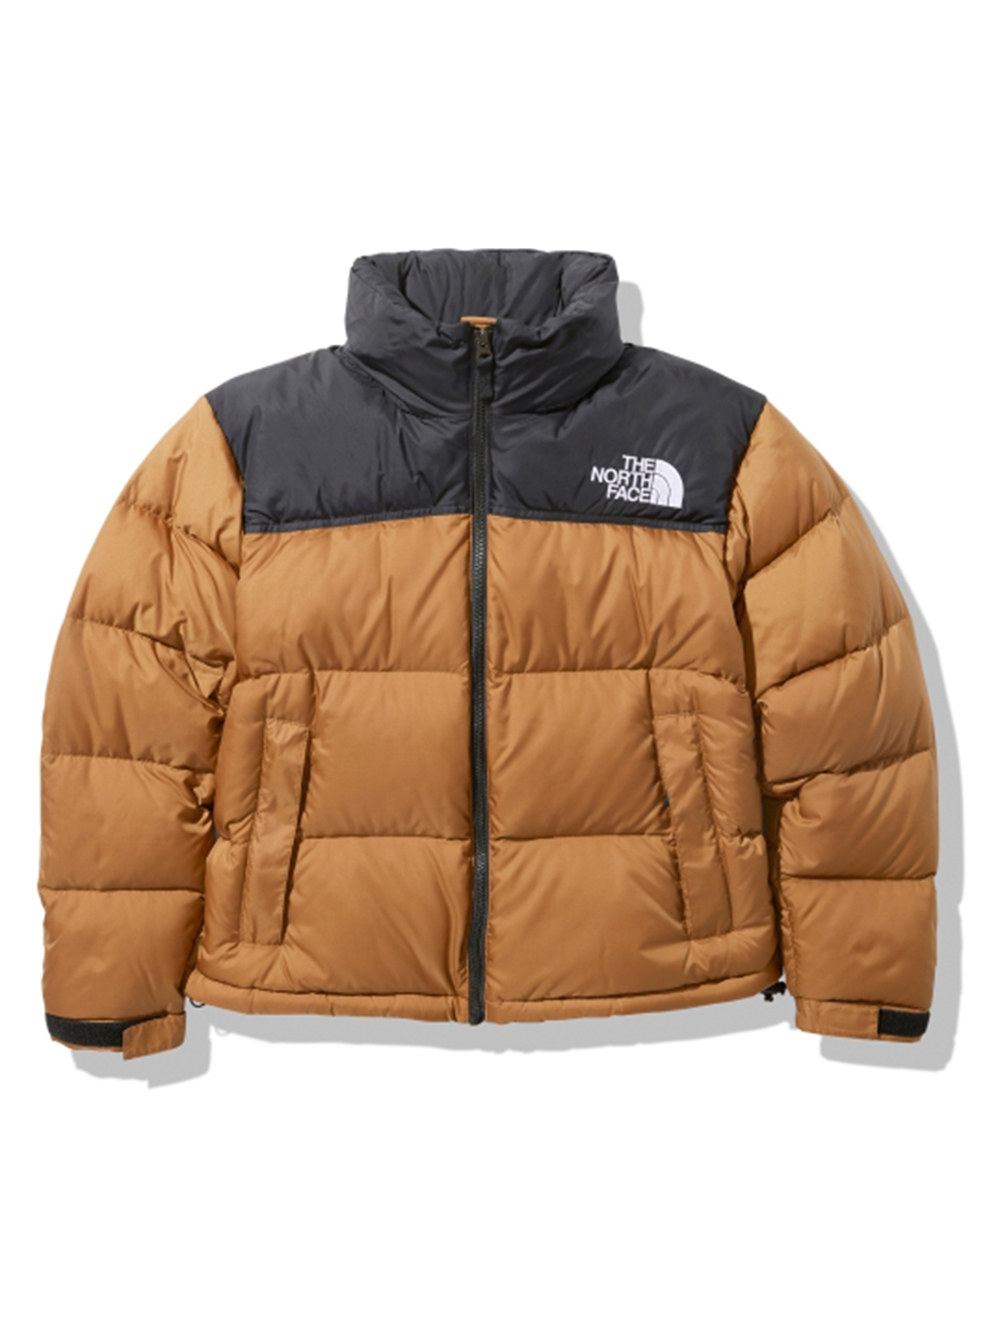 【THE NORTH FACE】Short Nuptse Jacket(BRW-M)